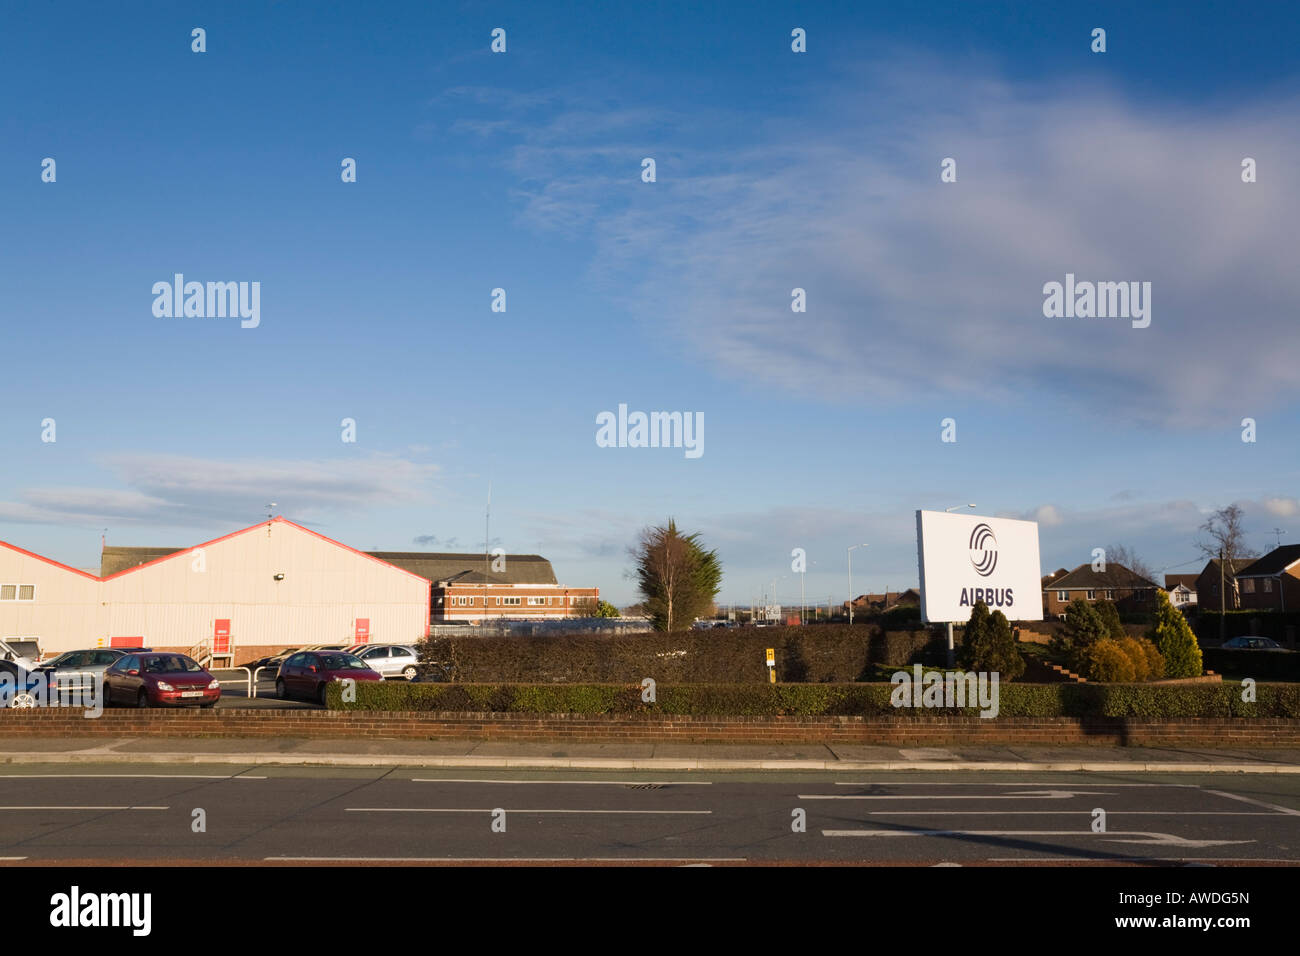 Broughton Flintshire North Wales UK British Aerospace Airbus aircraft factory wing manufacturing plant building - Stock Image